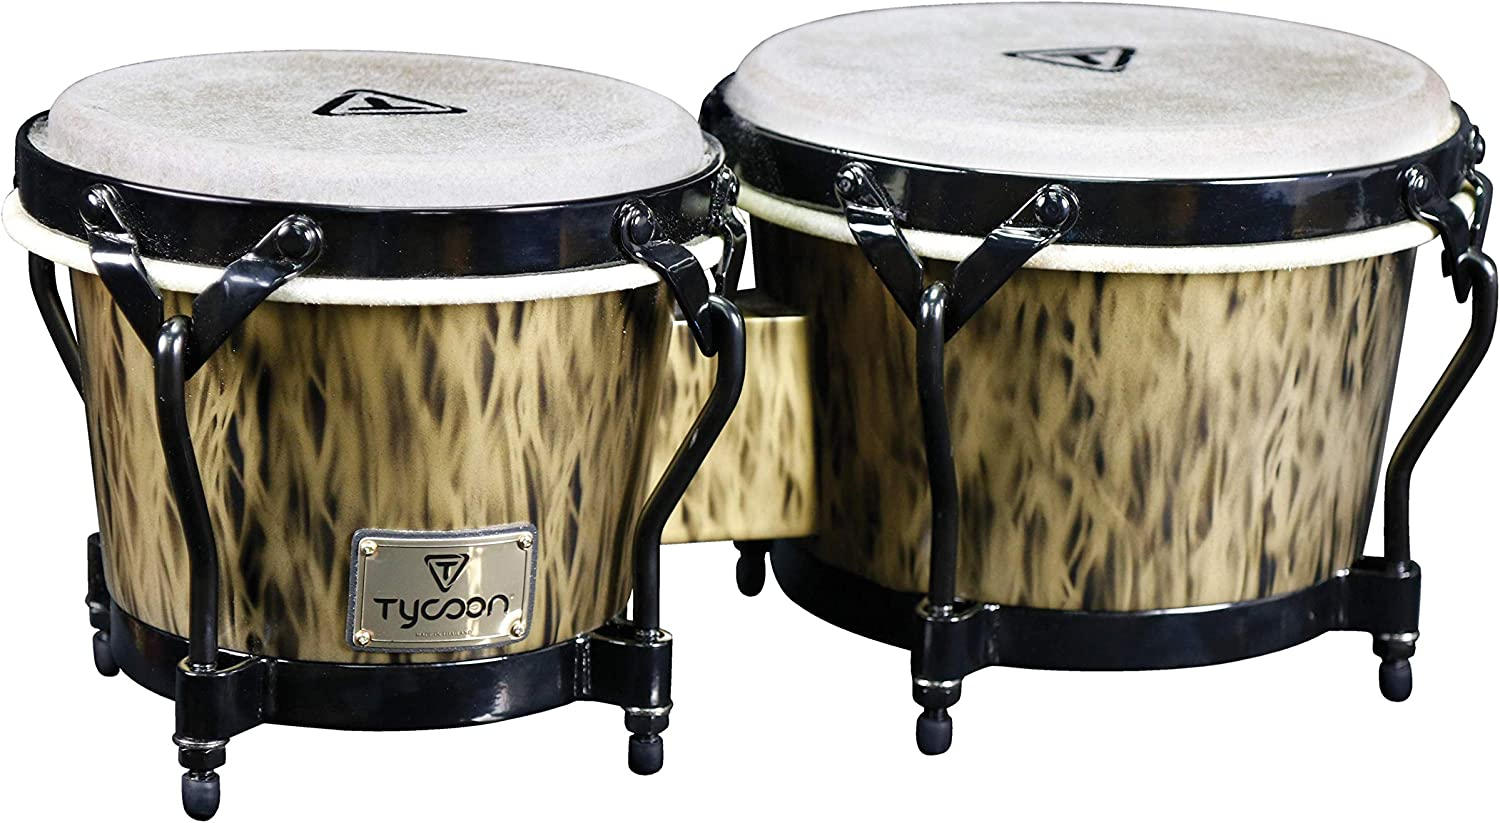 Tycoon Direct stock discount Percussion Bongo KG STBS-B New color Drum